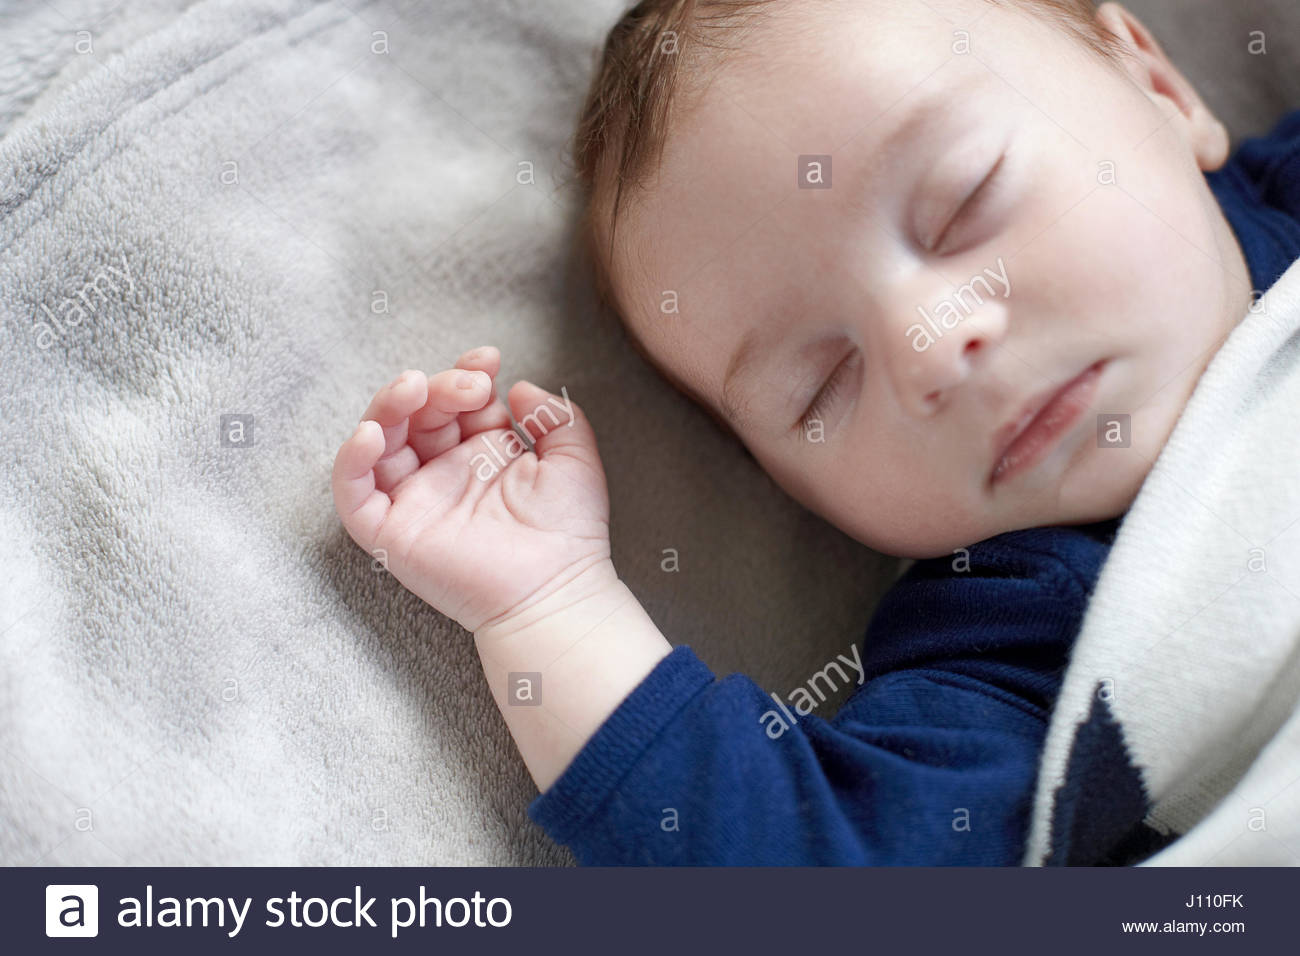 2 Month old new born Baby Boy lying on his back shot overhead - Stock Image